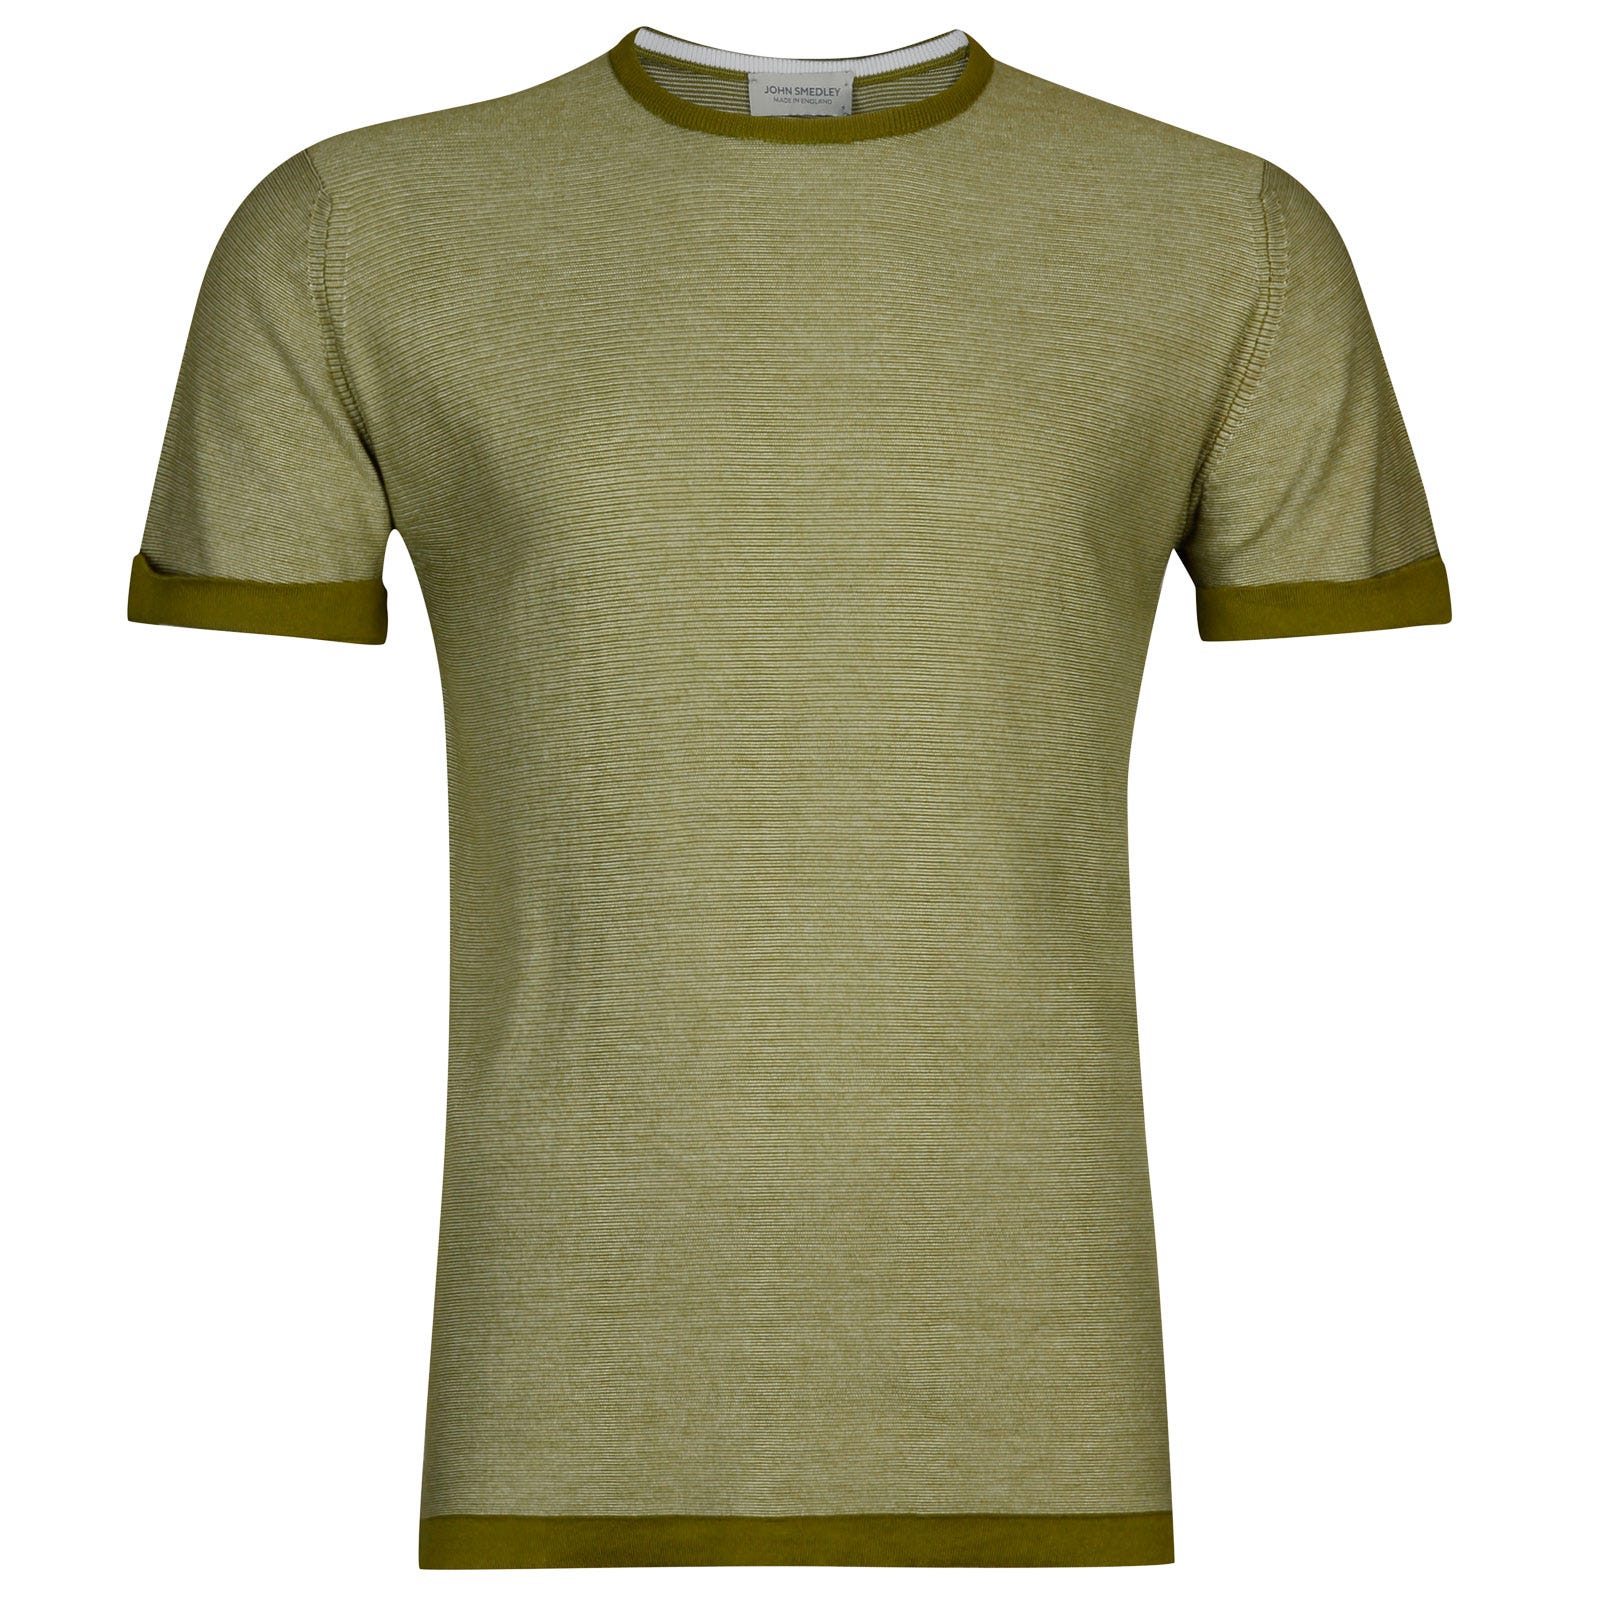 John Smedley benhope Sea Island Cotton T-shirt in Lumsdale